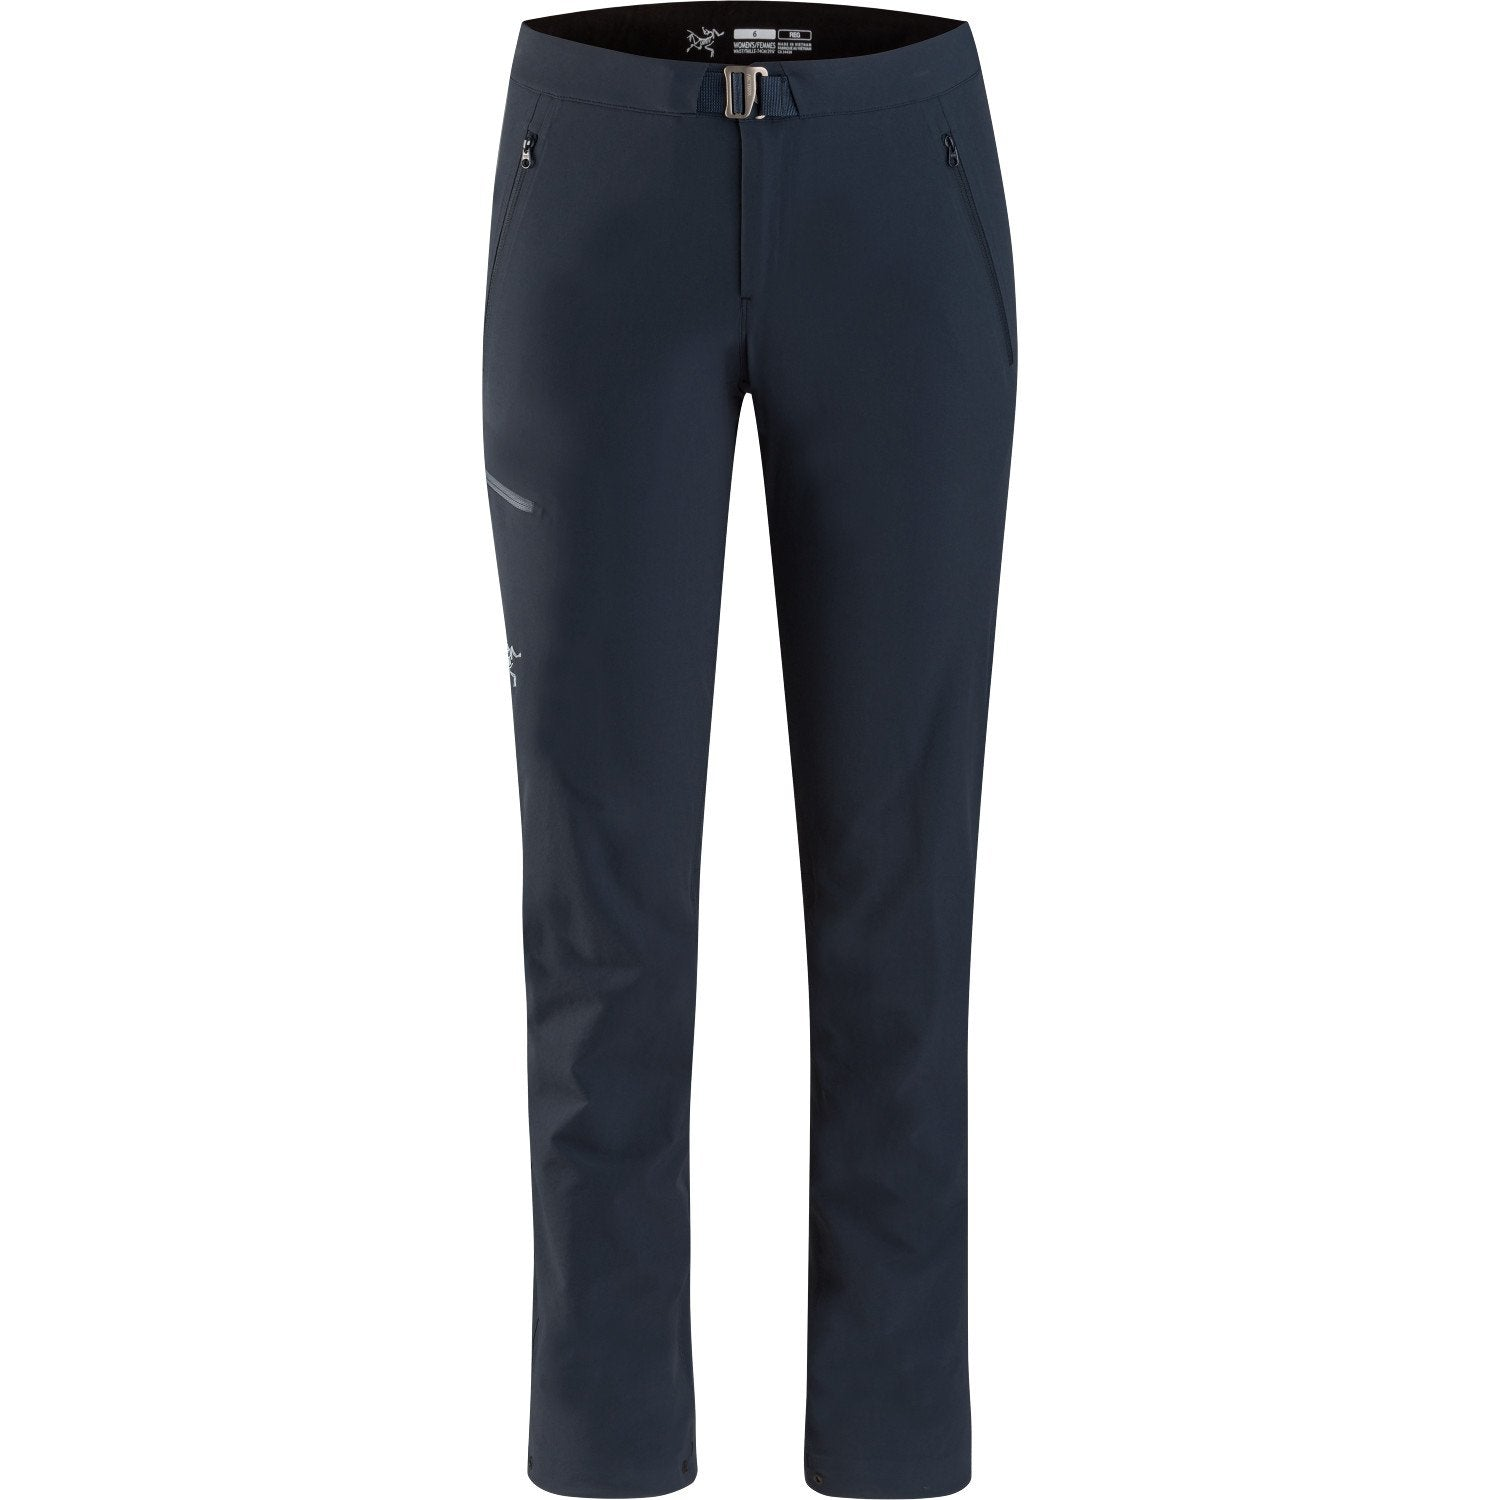 ArcTeryx Gamma LT Womens Pant in Black